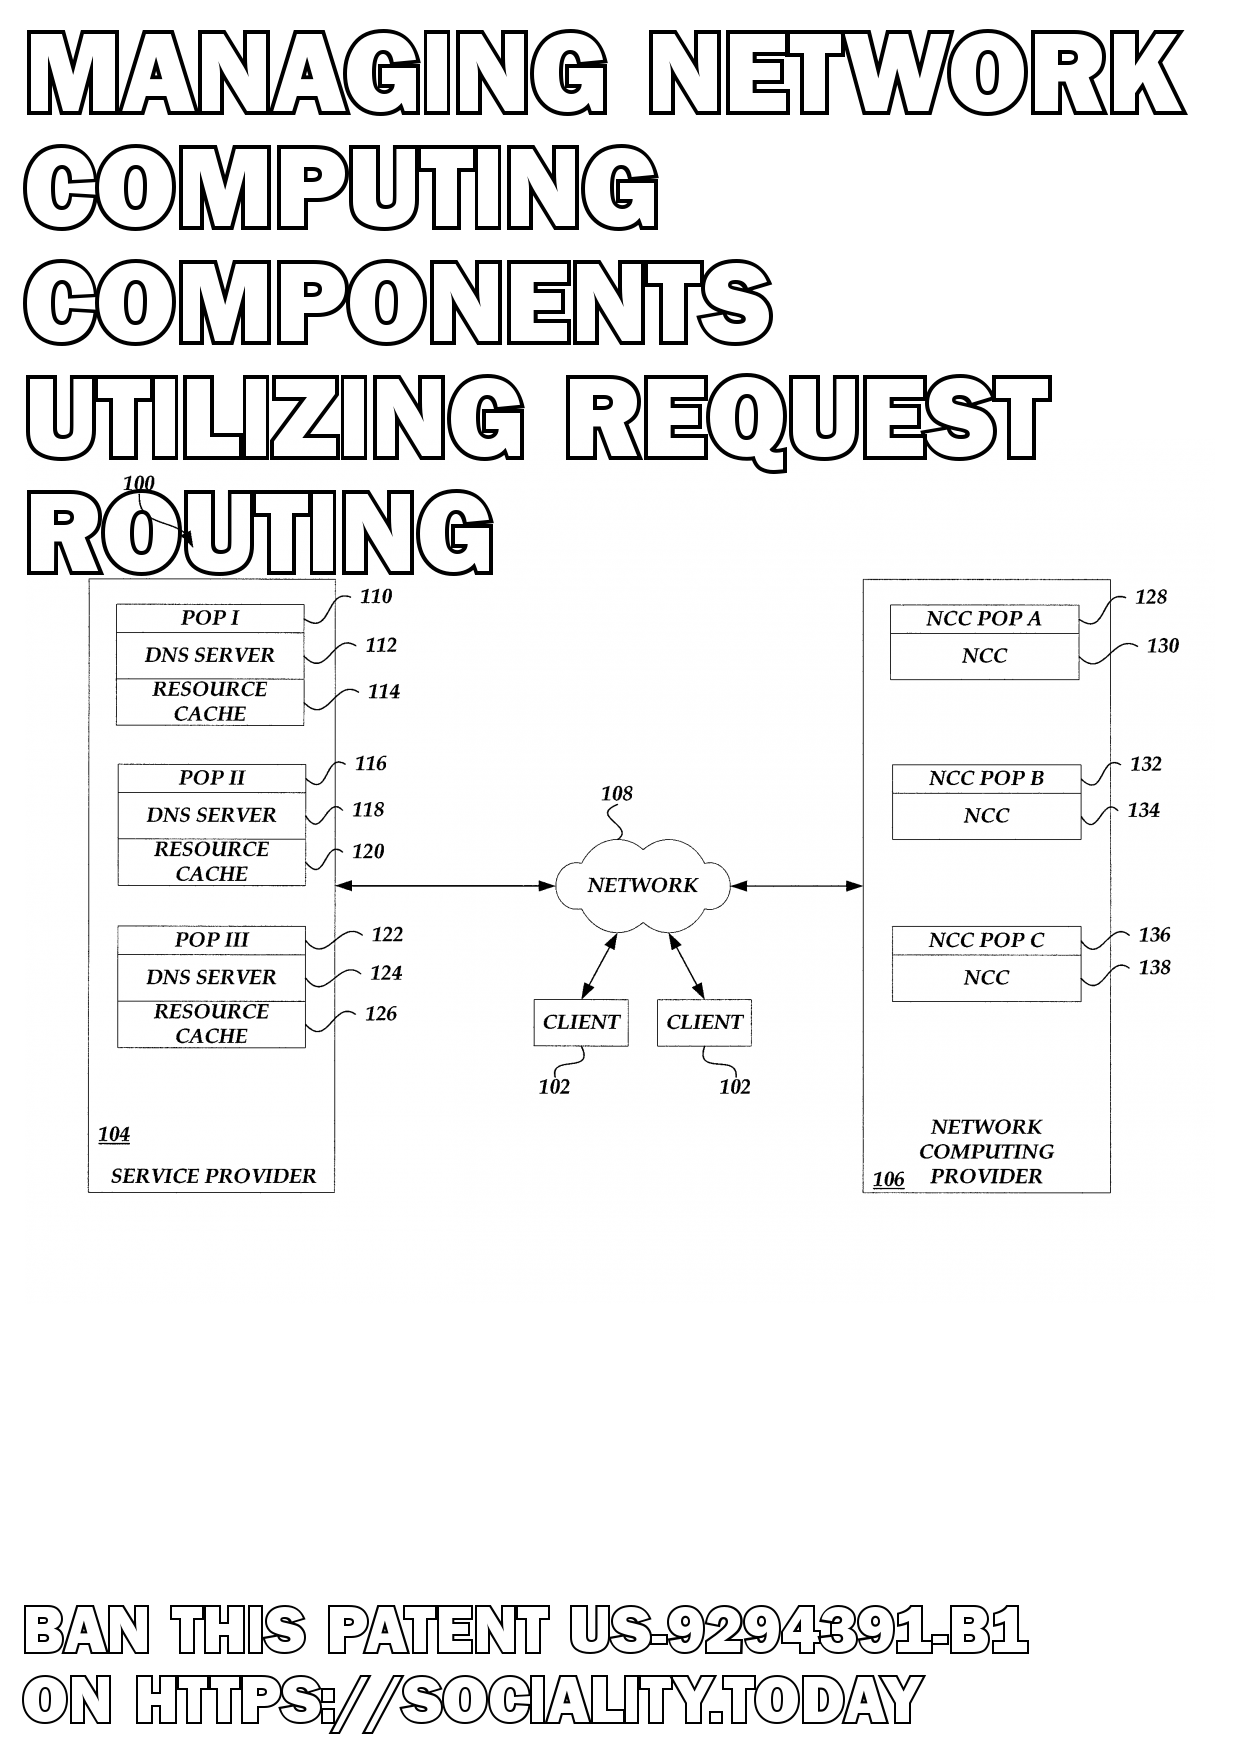 Managing network computing components utilizing request routing  - US-9294391-B1